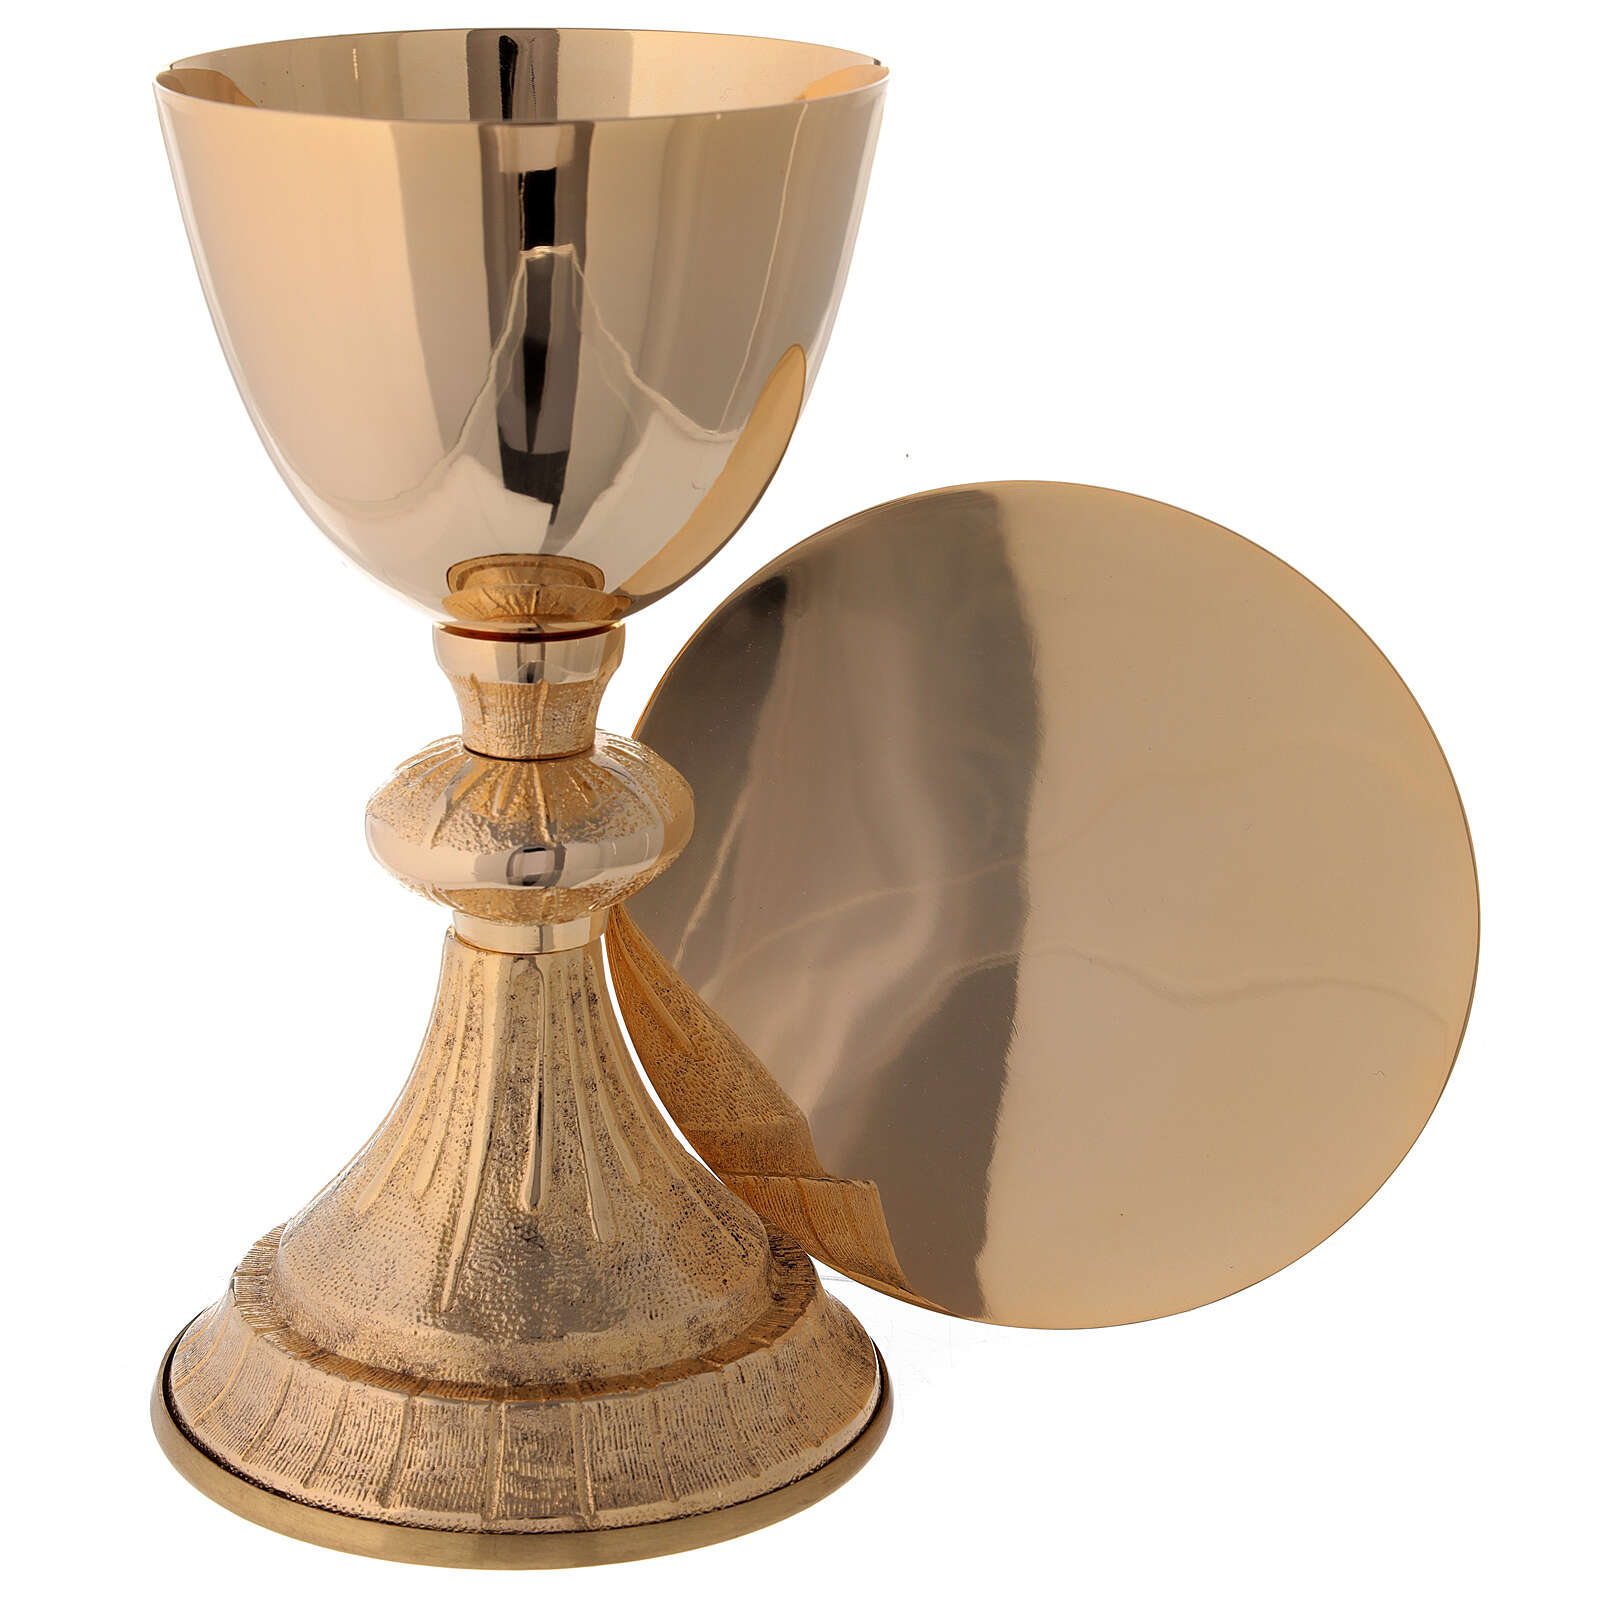 Knurled chalice and paten with lined pattern in gold plated brass 7 1/4 in 4